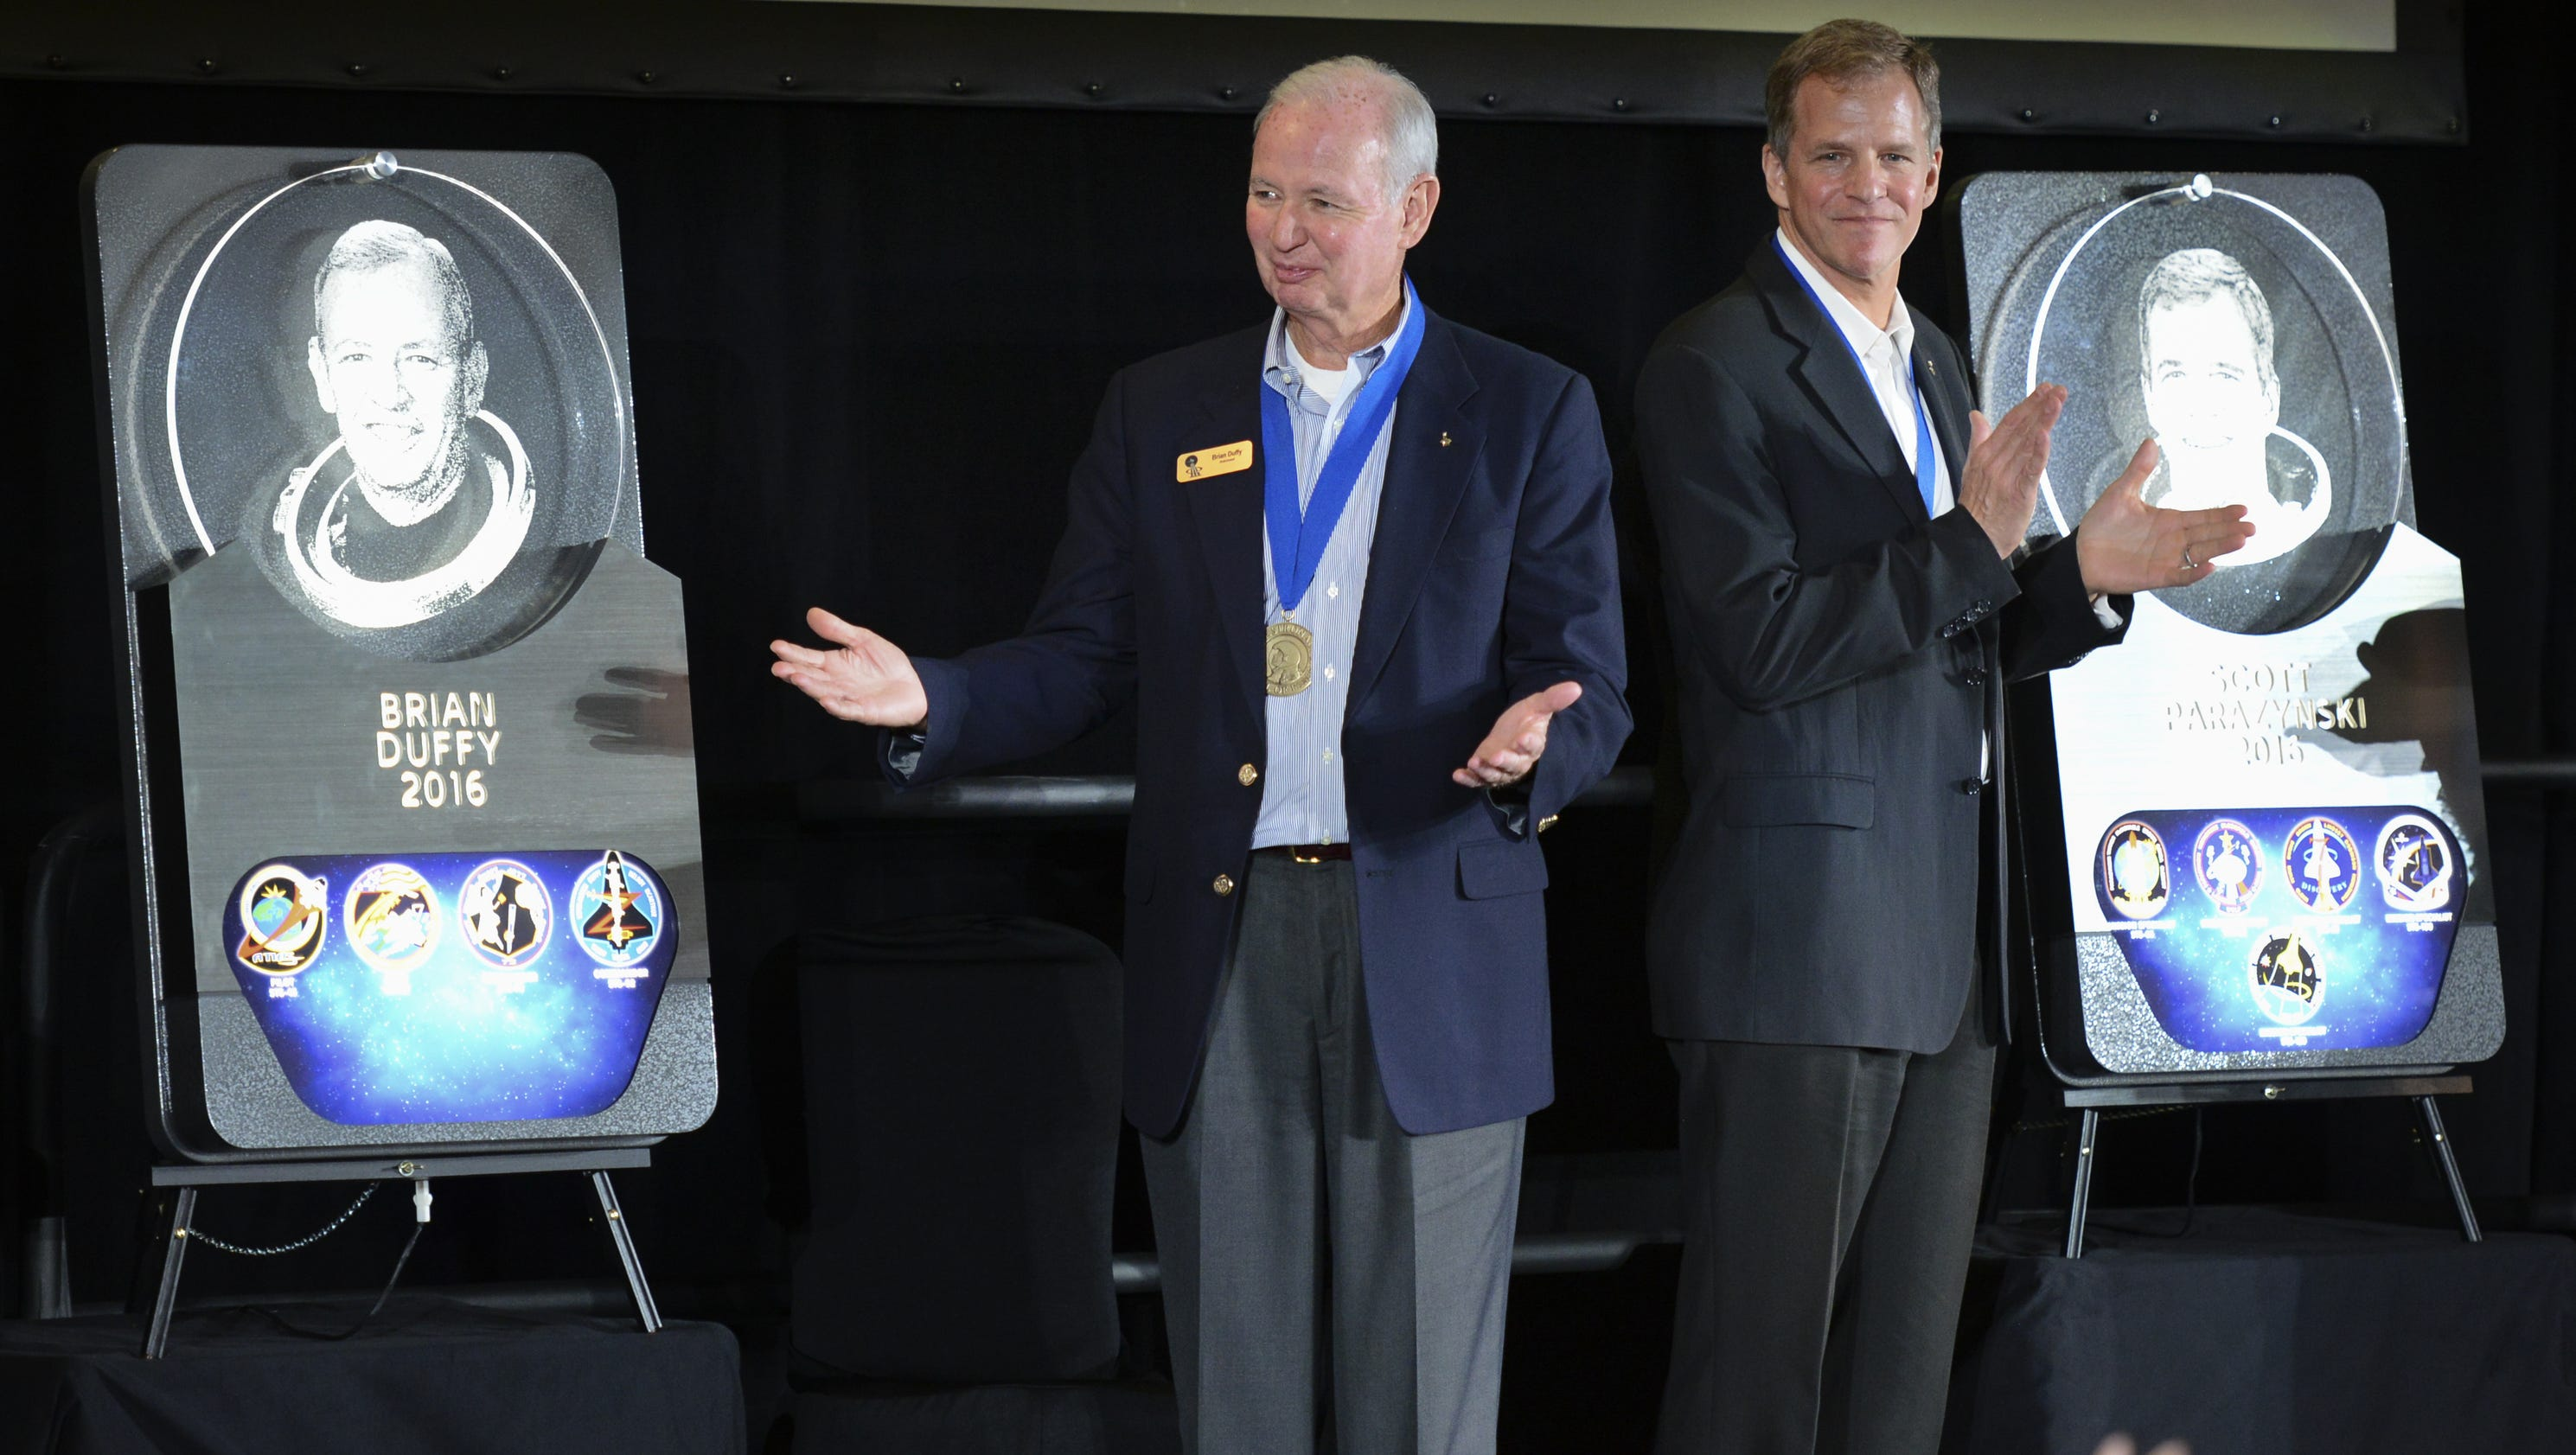 astronaut hall of fame members - photo #14